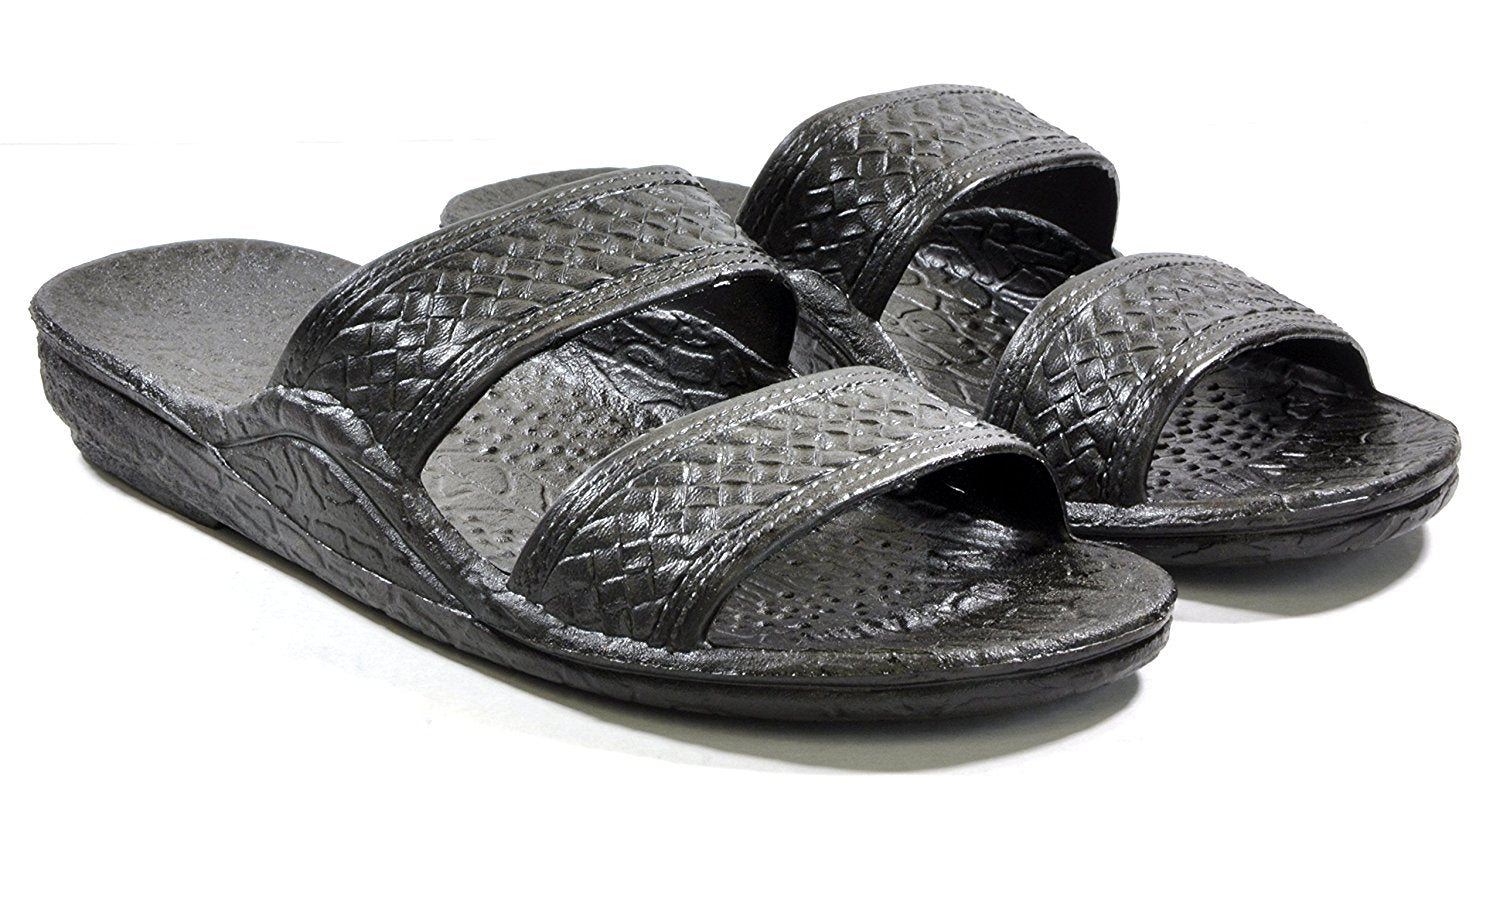 Moses Rubber Slides | Black Brown Jesus Slippers - AlohaShoes.com